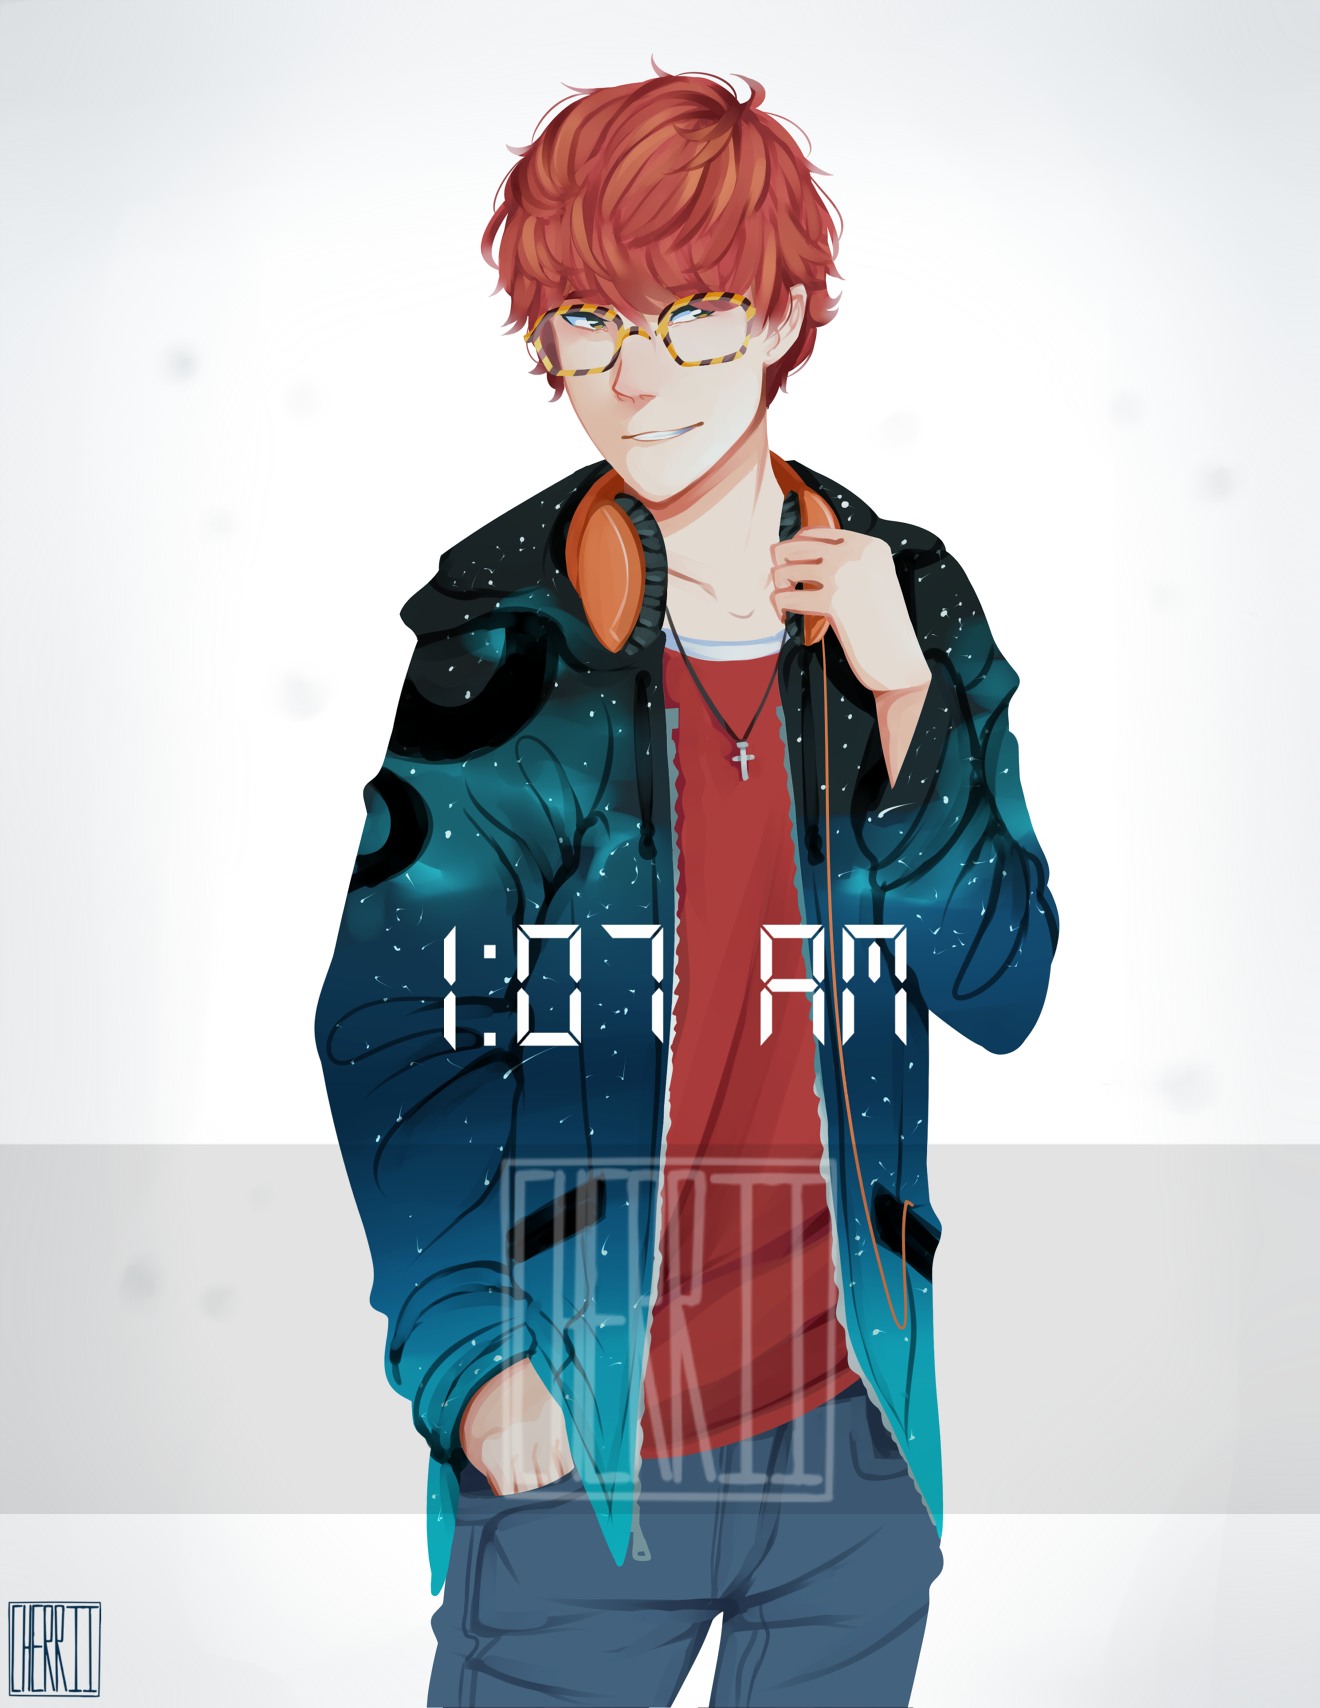 Mystic messenger time schedule